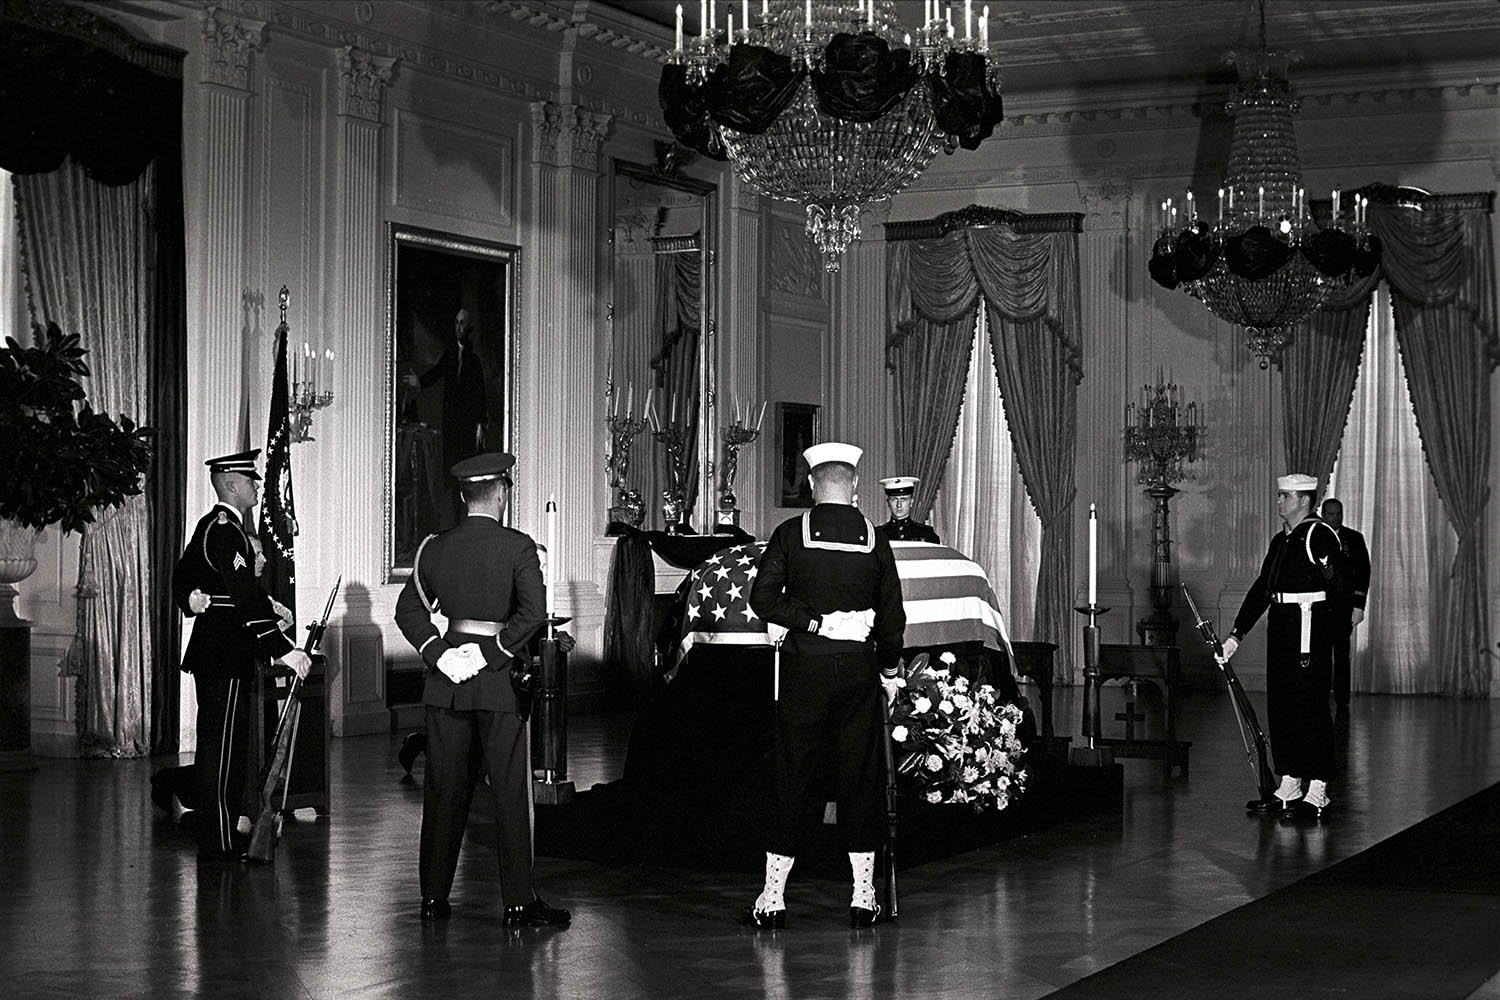 Nov. 23, 1963. In this photo released by the White House, President John F. Kennedy's body lies in state in the East Room of the White House, attended by an honor guard.